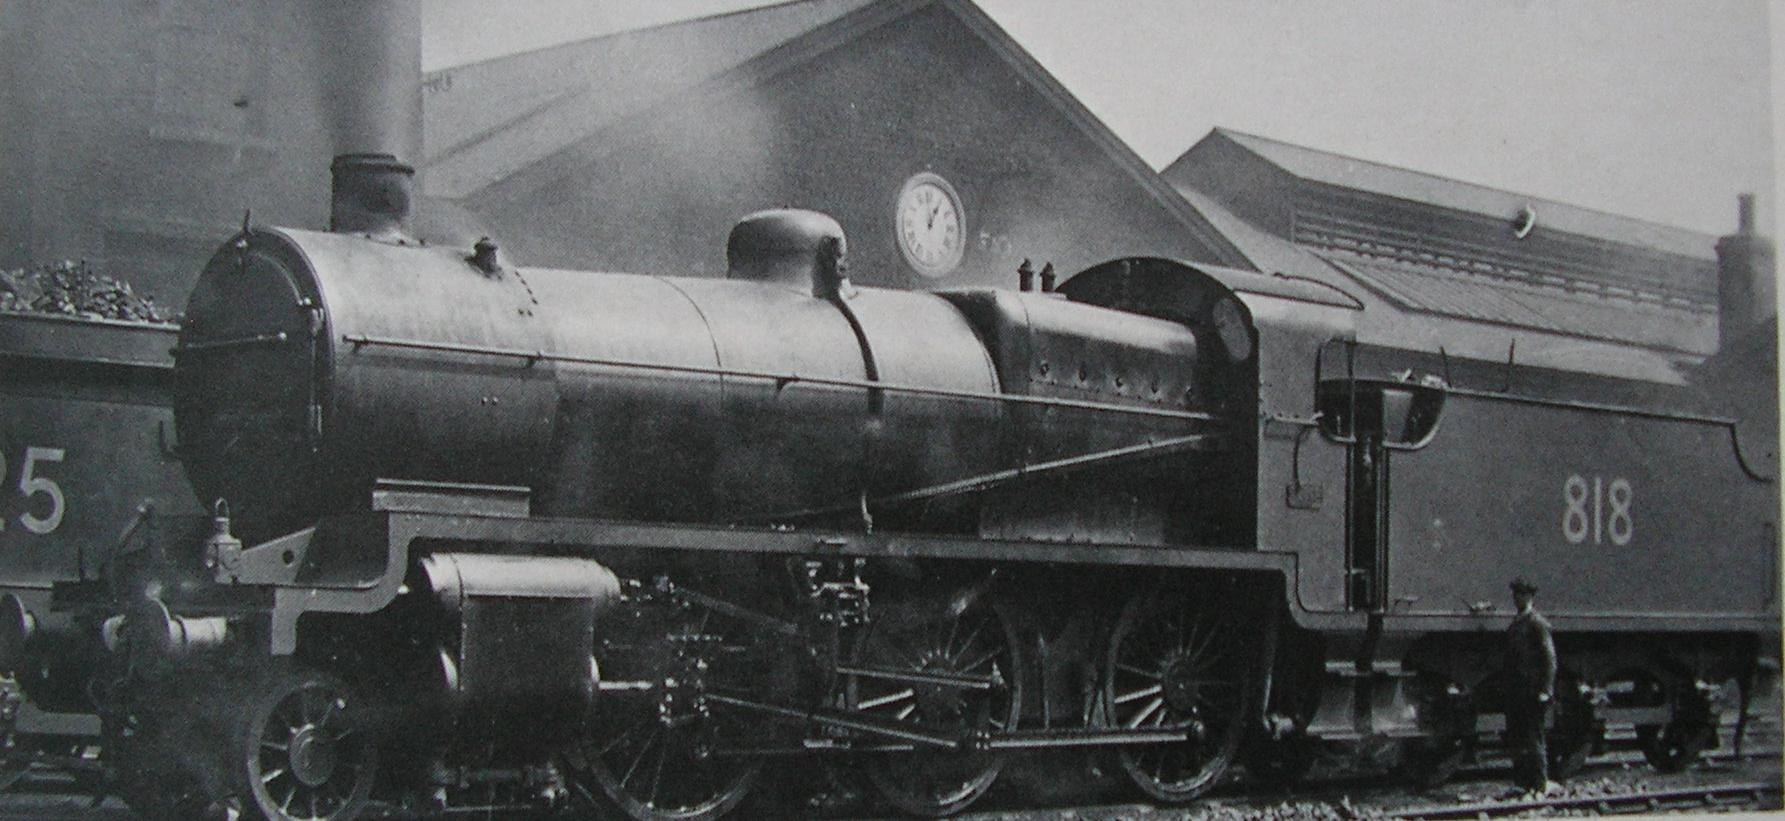 File:N class 818 stovepipe.jpg